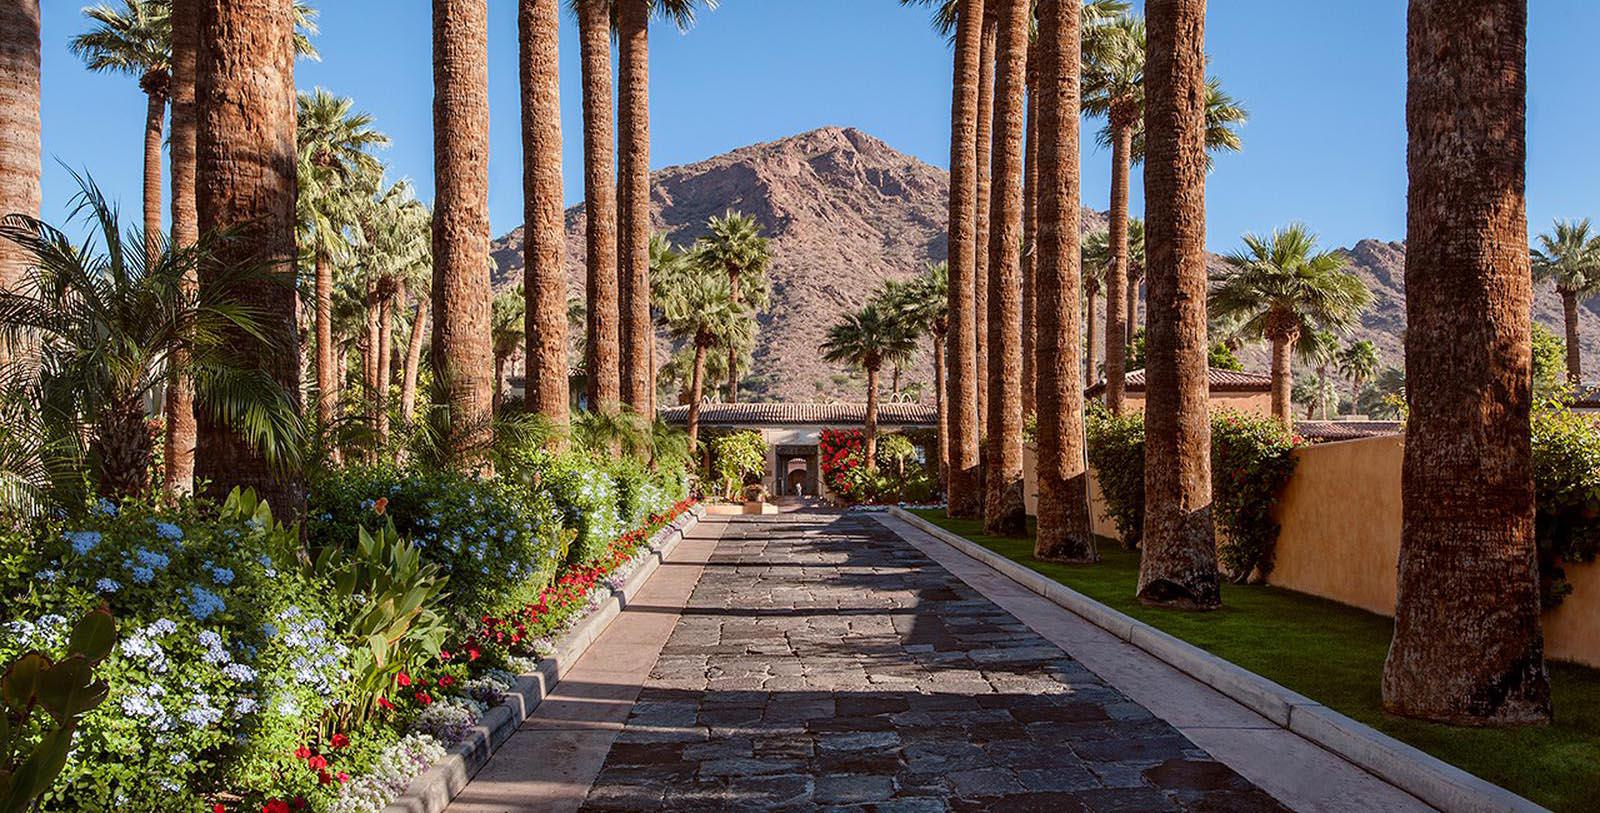 Image of Entrance to Royal Palms Resort and Spa, 1948, Member of Historic Hotels of America, in Phoenix Arizona, Special Offers, Discounted Rates, Families, Romantic Escape, Honeymoons, Anniversaries, Reunions